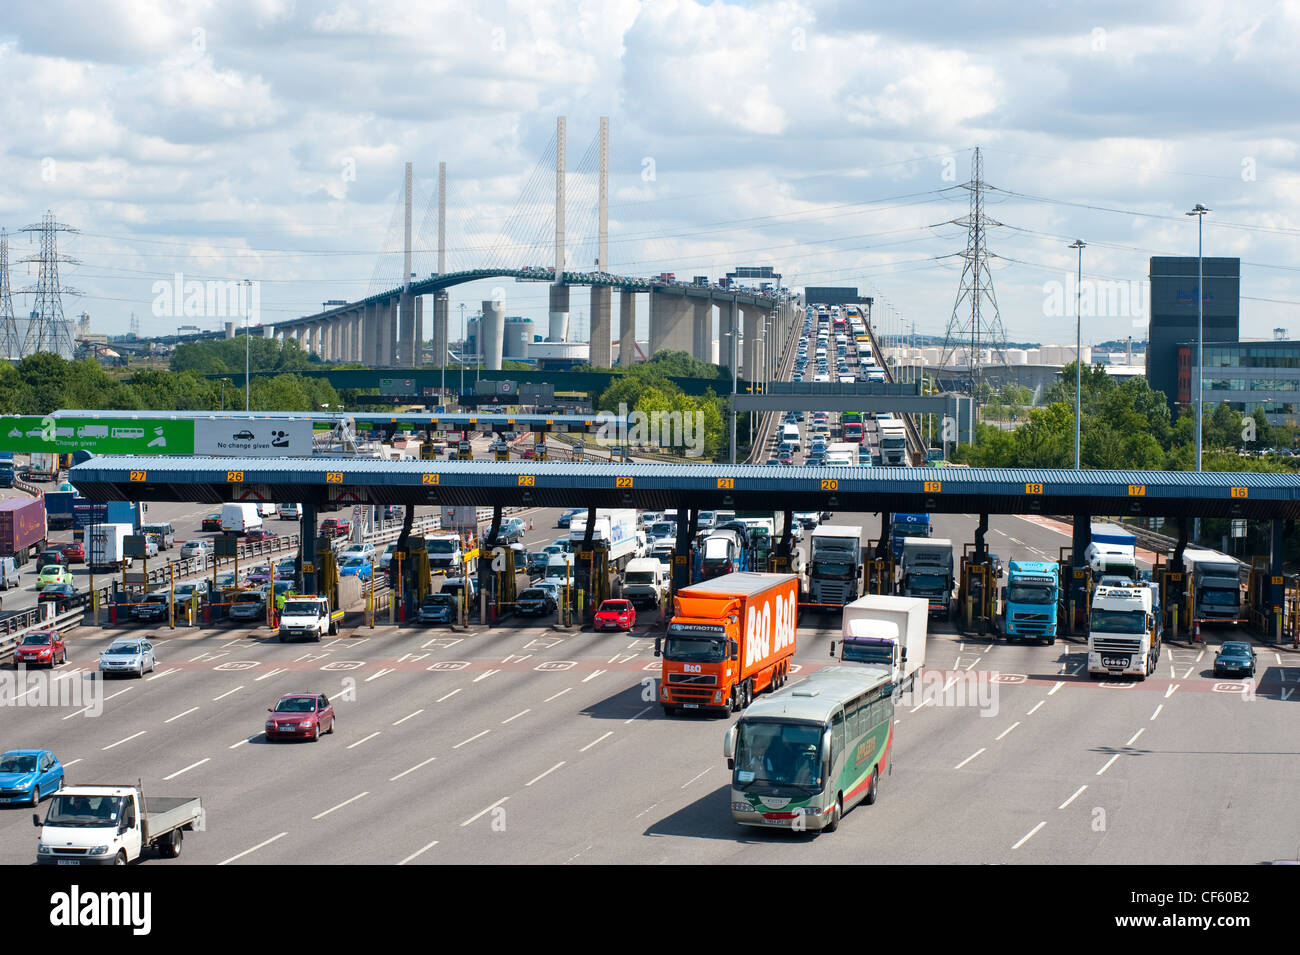 Traffic flowing over the QE2 Bridge (Dartford River Crossing) into Kent from Essex. - Stock Image